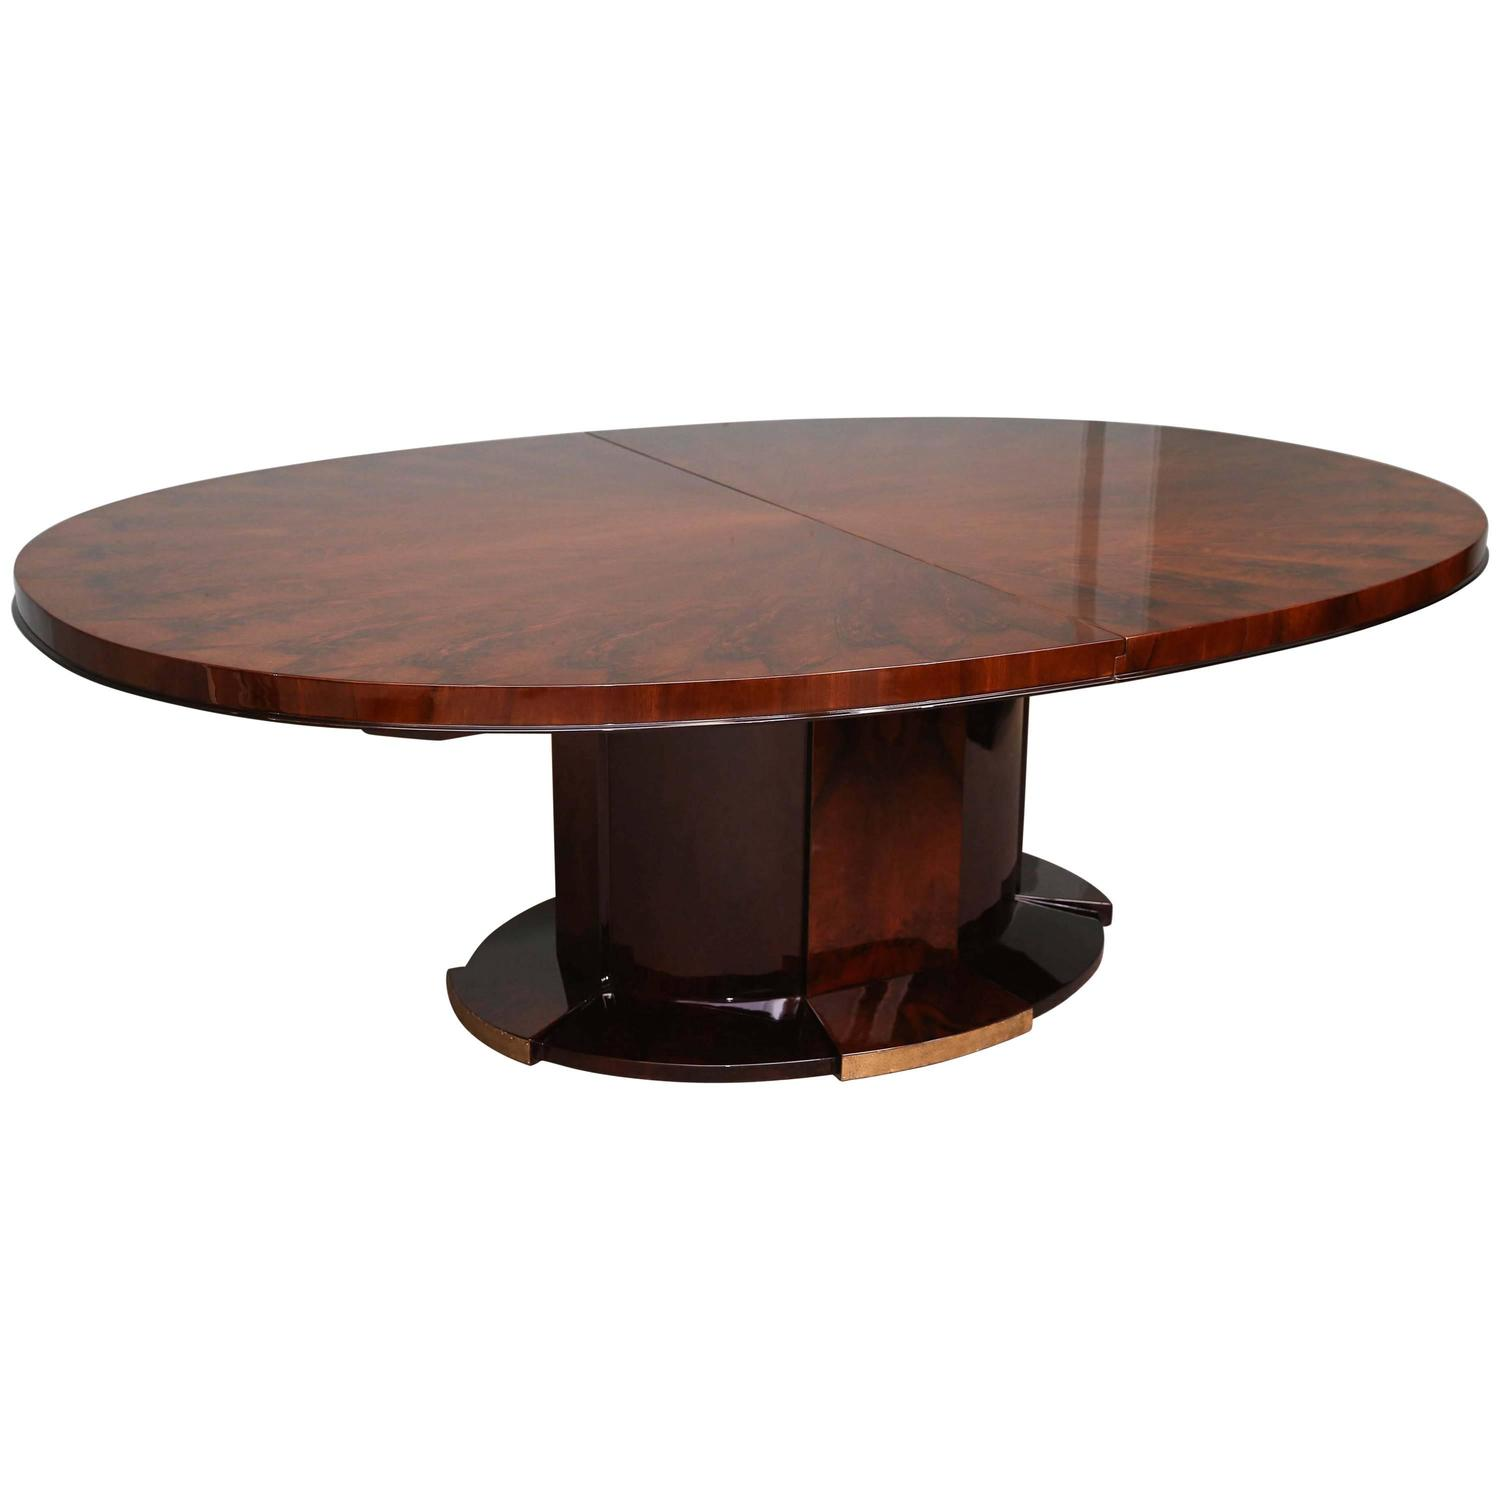 Art deco oval dining room table at 1stdibs for Oval dining room table